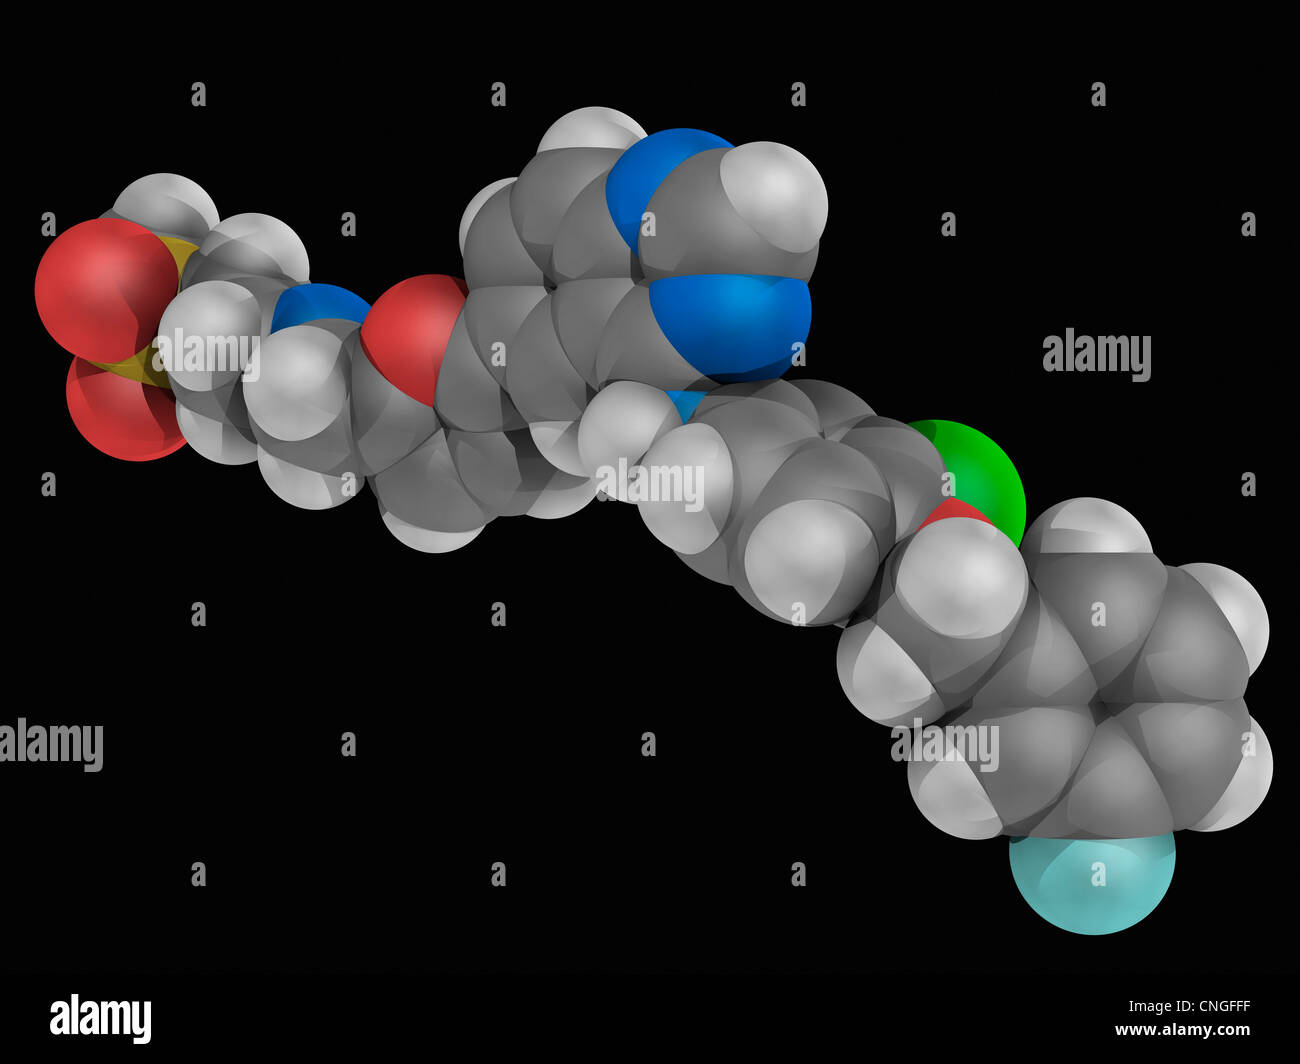 Lapatinib drug molecule Stock Photo